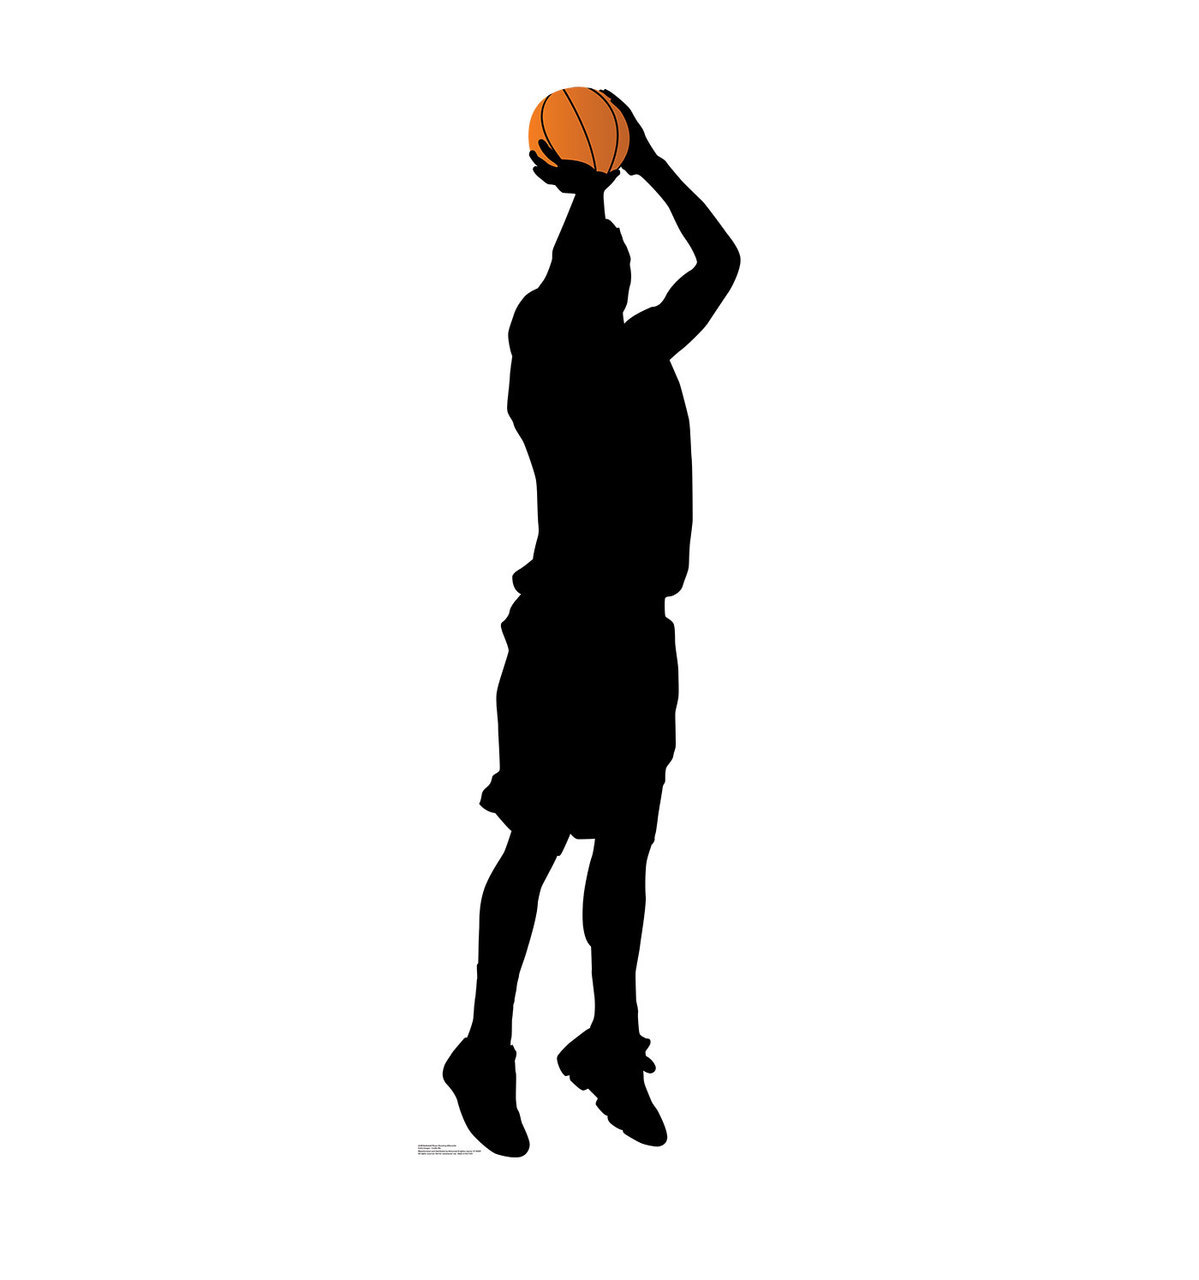 Silhouette Of Basketball Player Shooting.